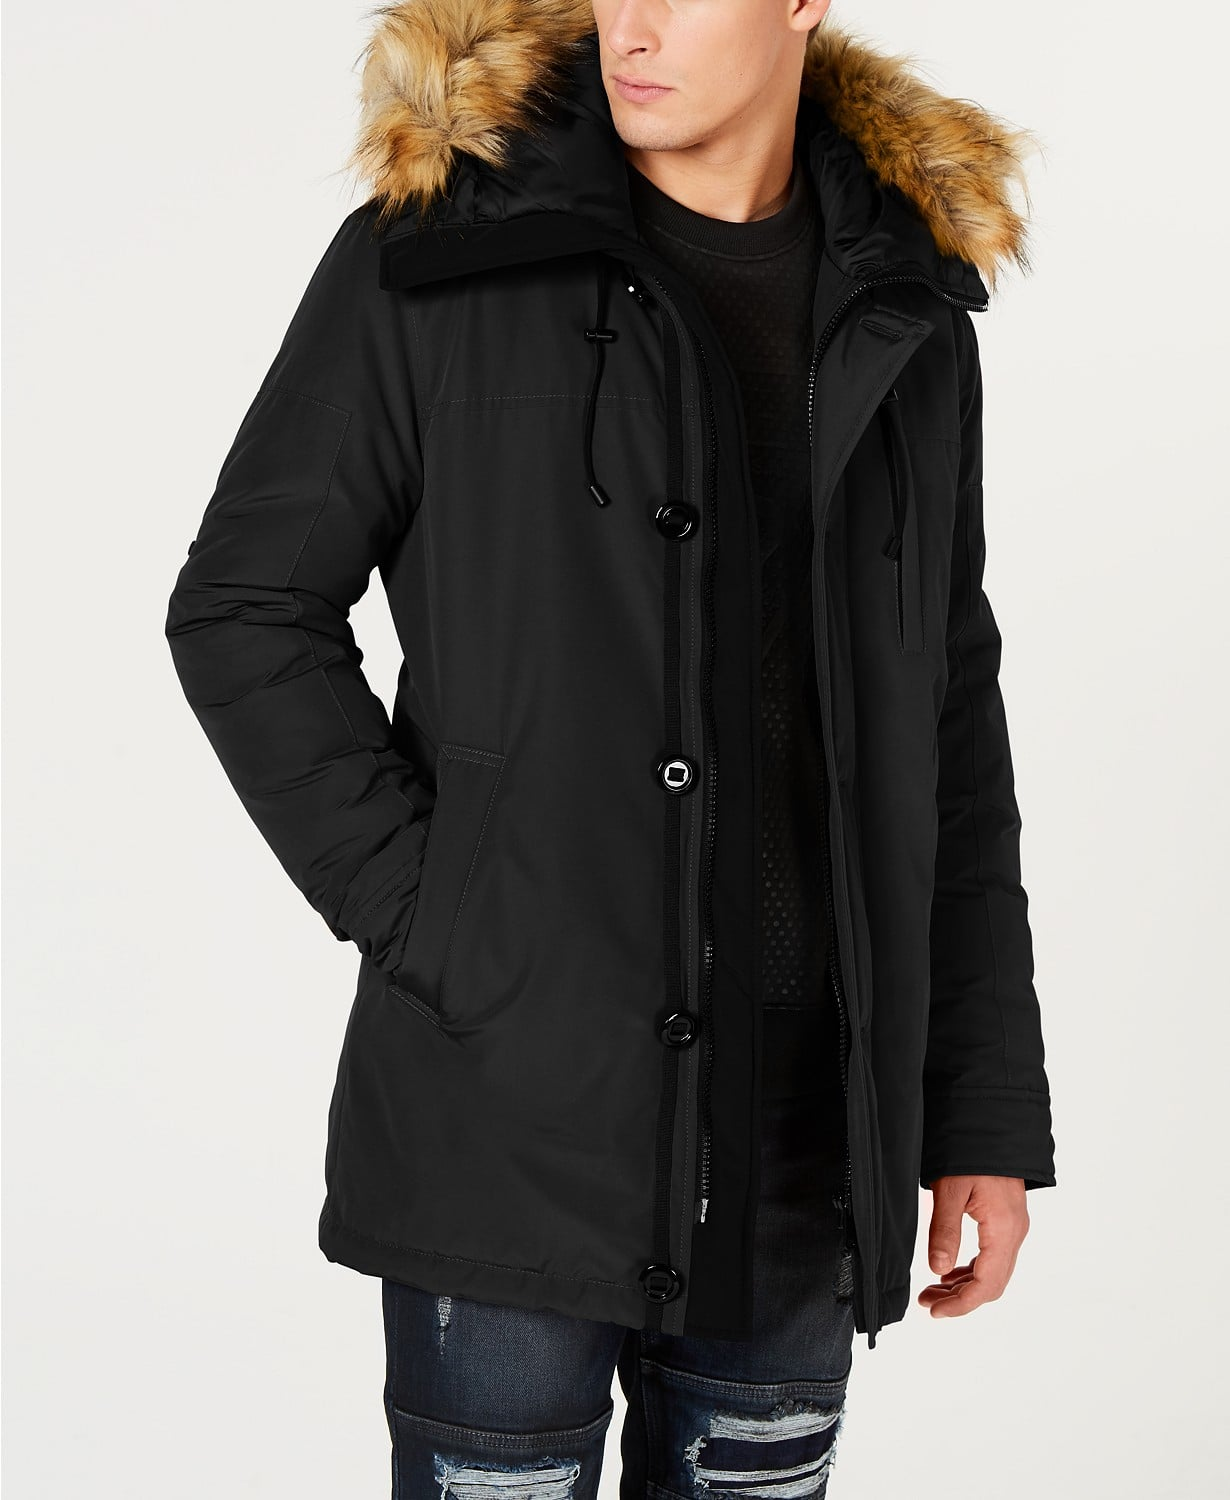 Macy's FLASH Sale - GUESS Hooded Parka w/ code  FLASH $97.5